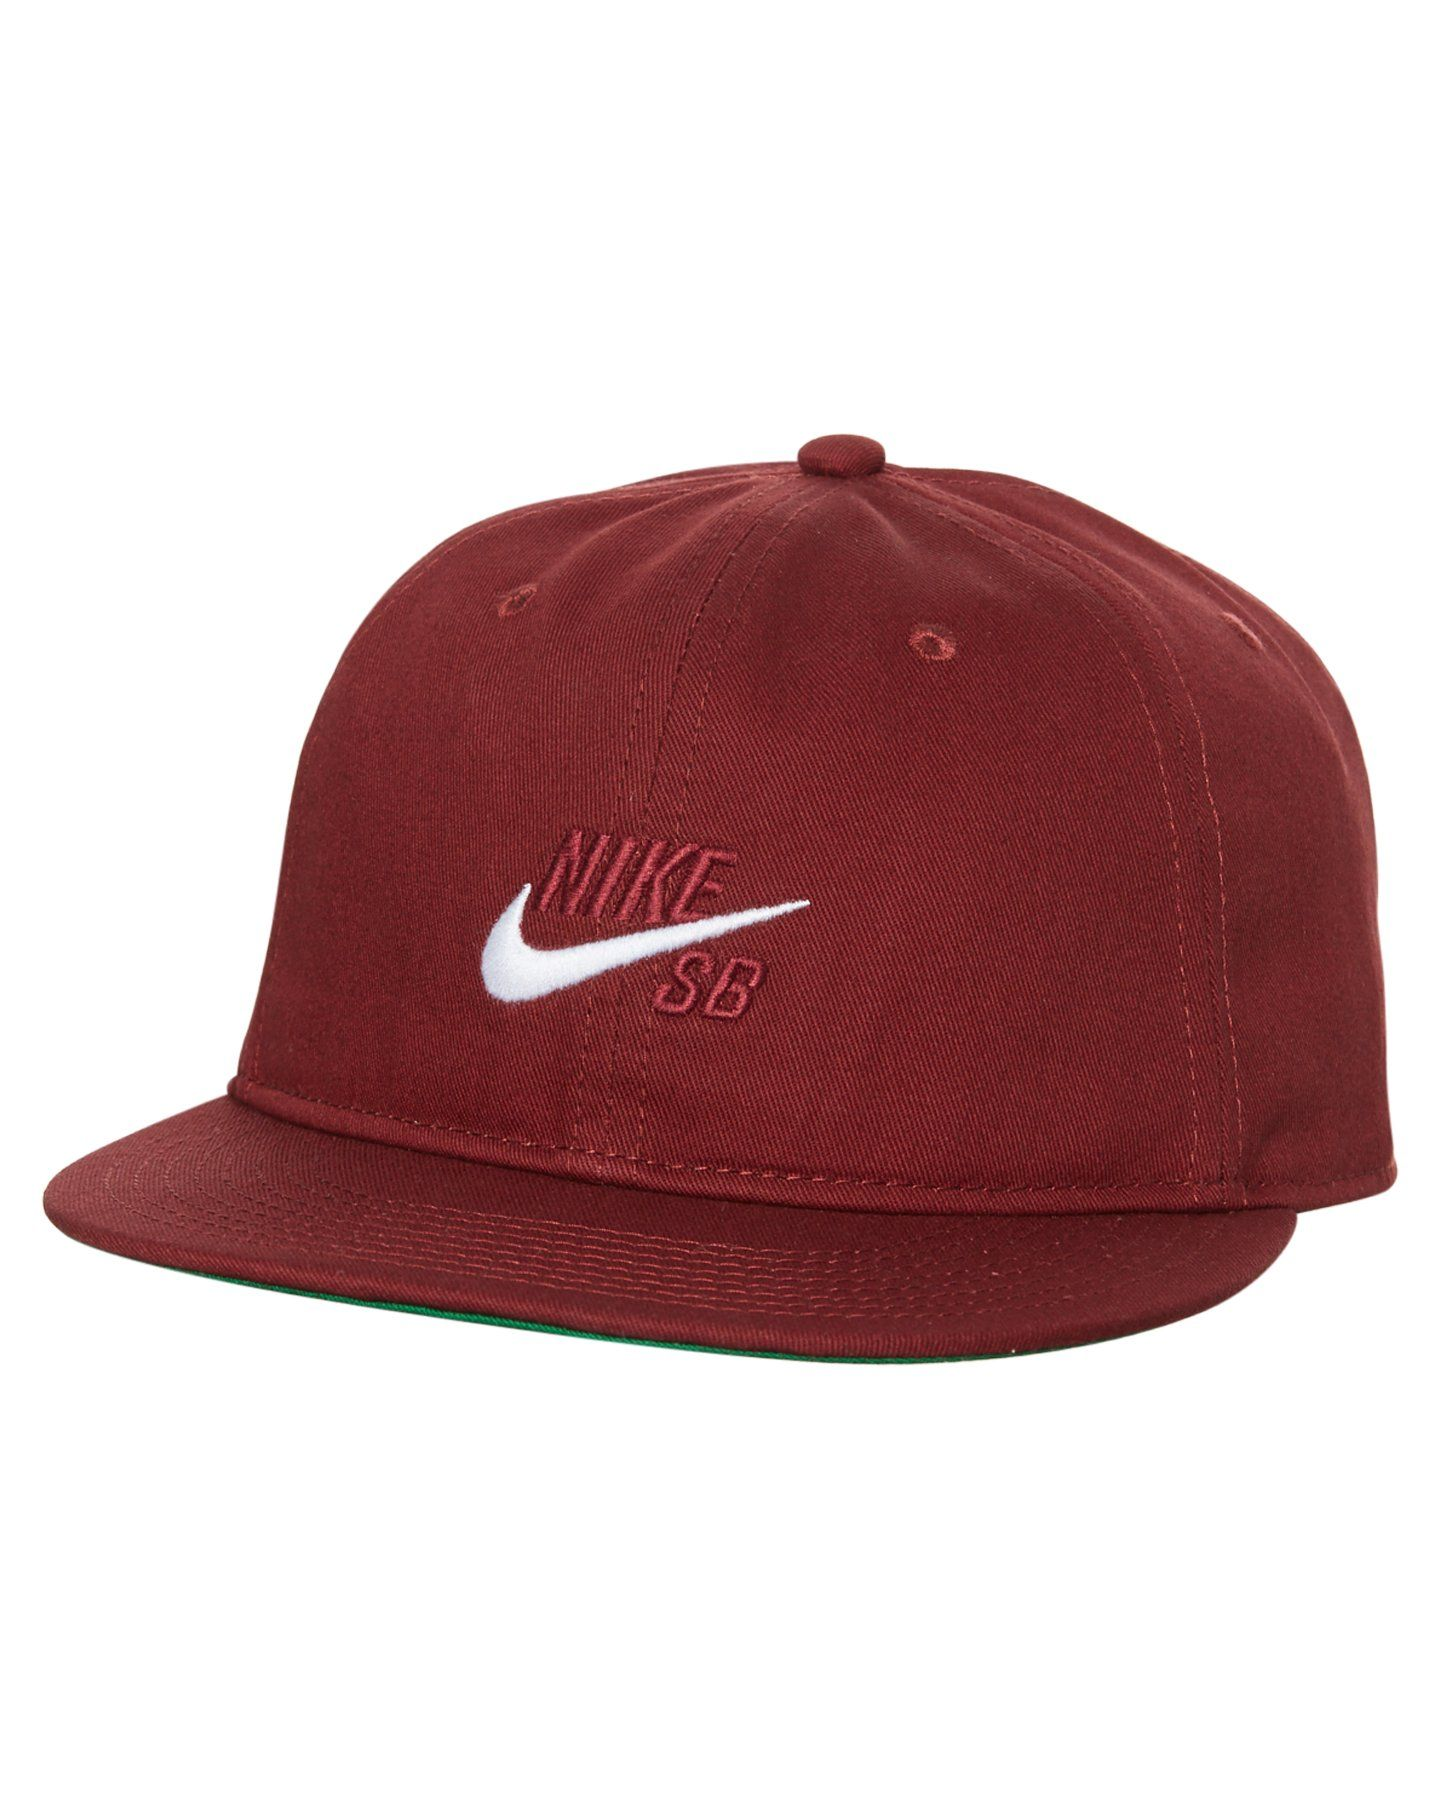 a35d291c1fb Time to look great with this Nike Sb Vintage Snapback Cap Red - http